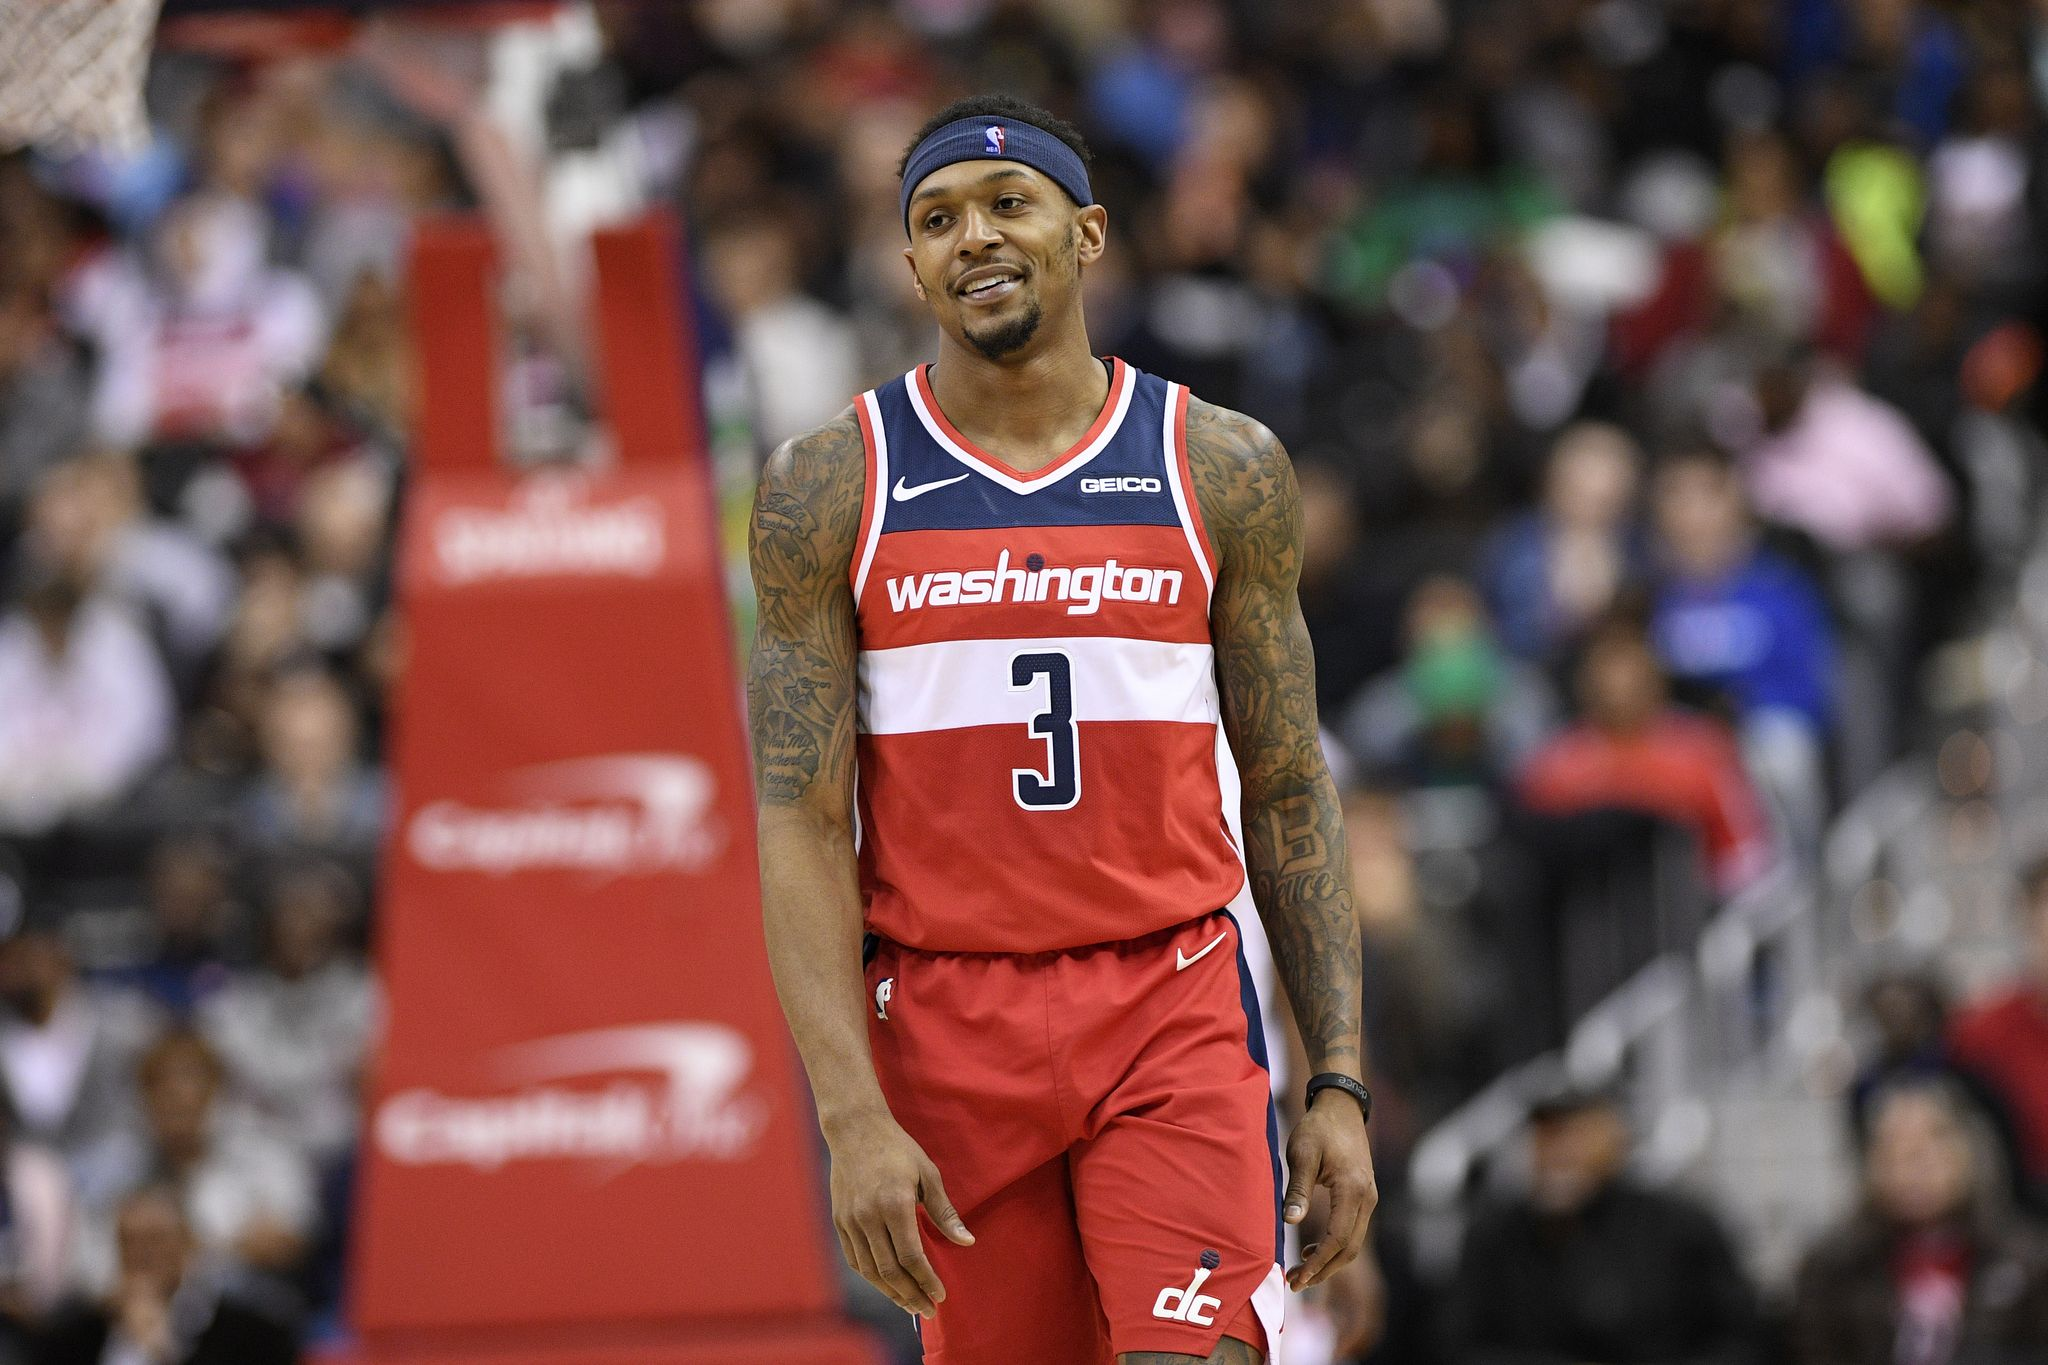 Bradley Beal says he recruited All-Stars to play for Wizards